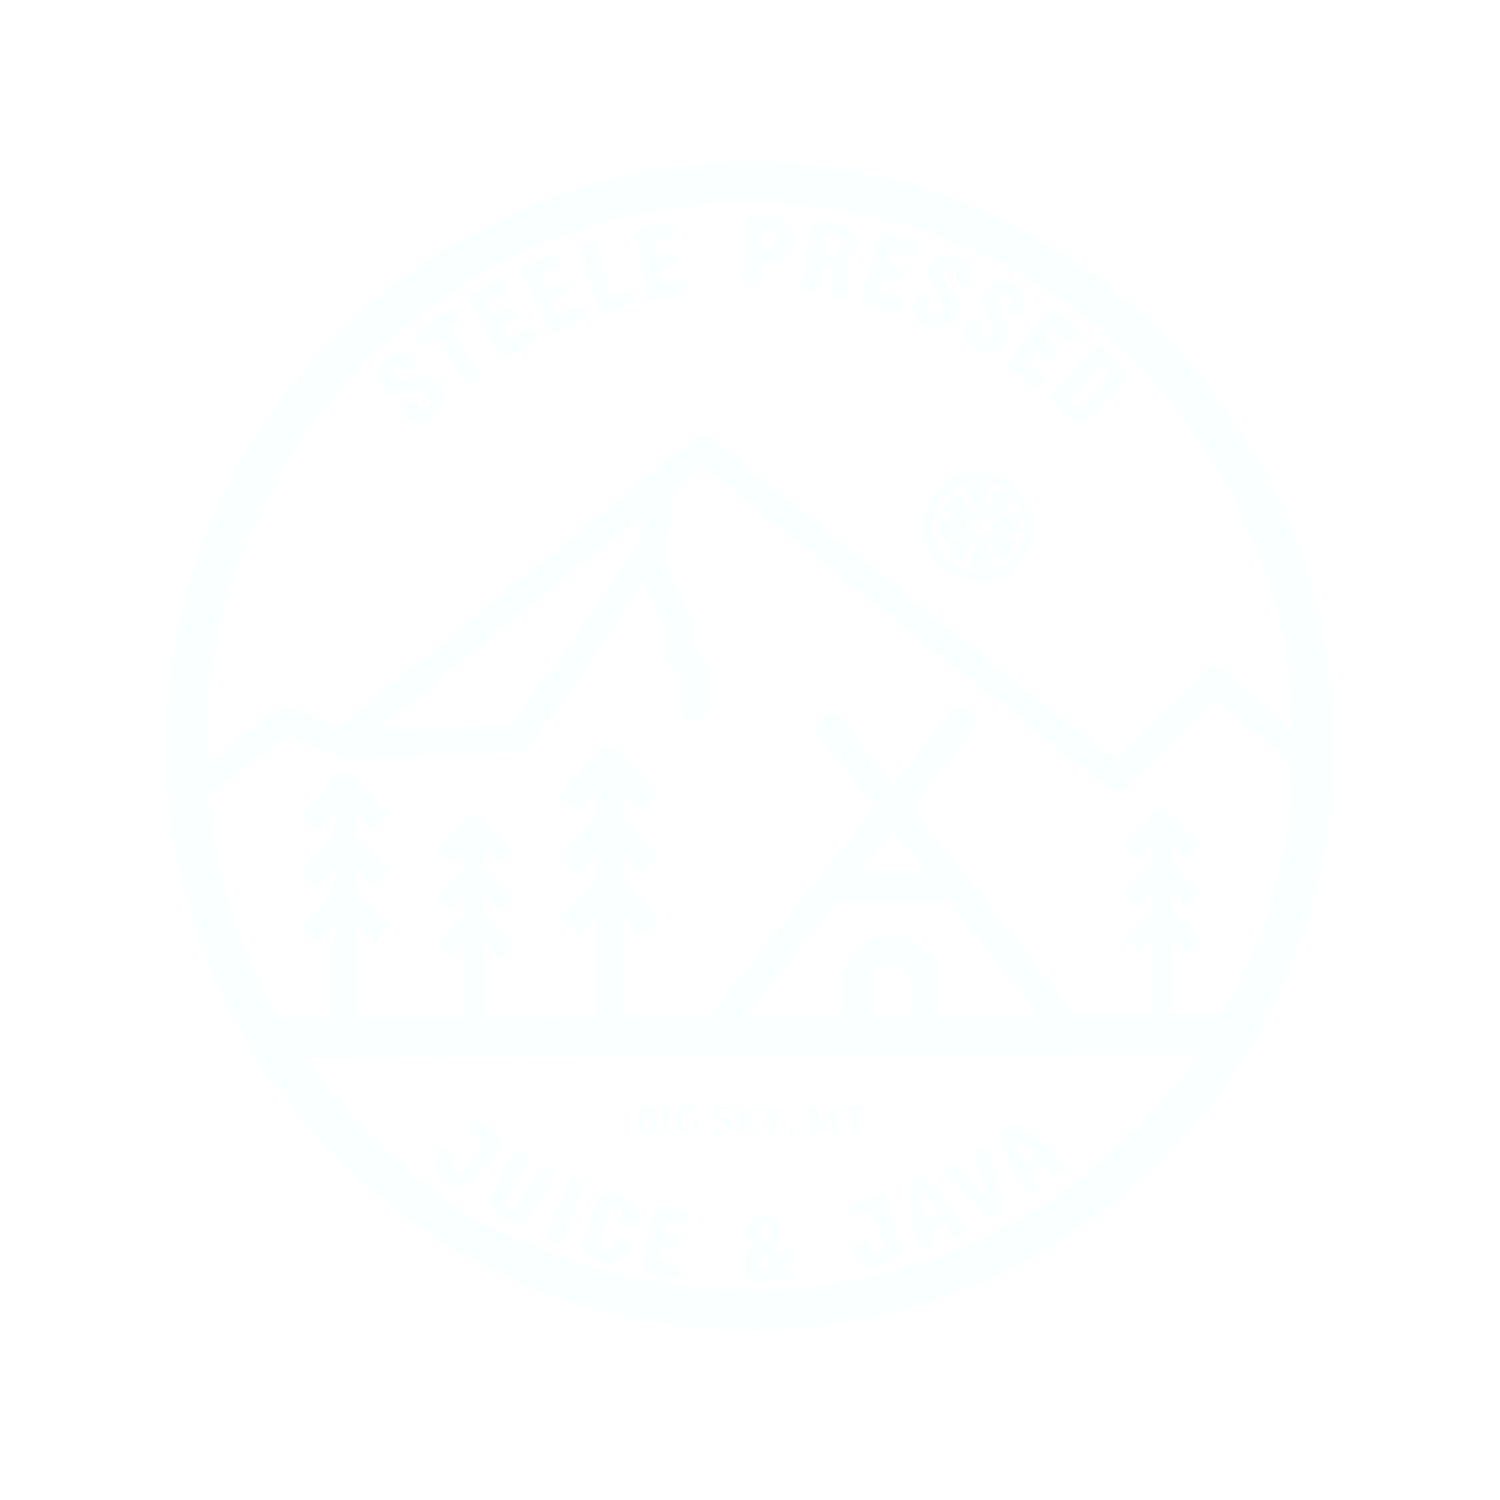 steele pressed juice & java